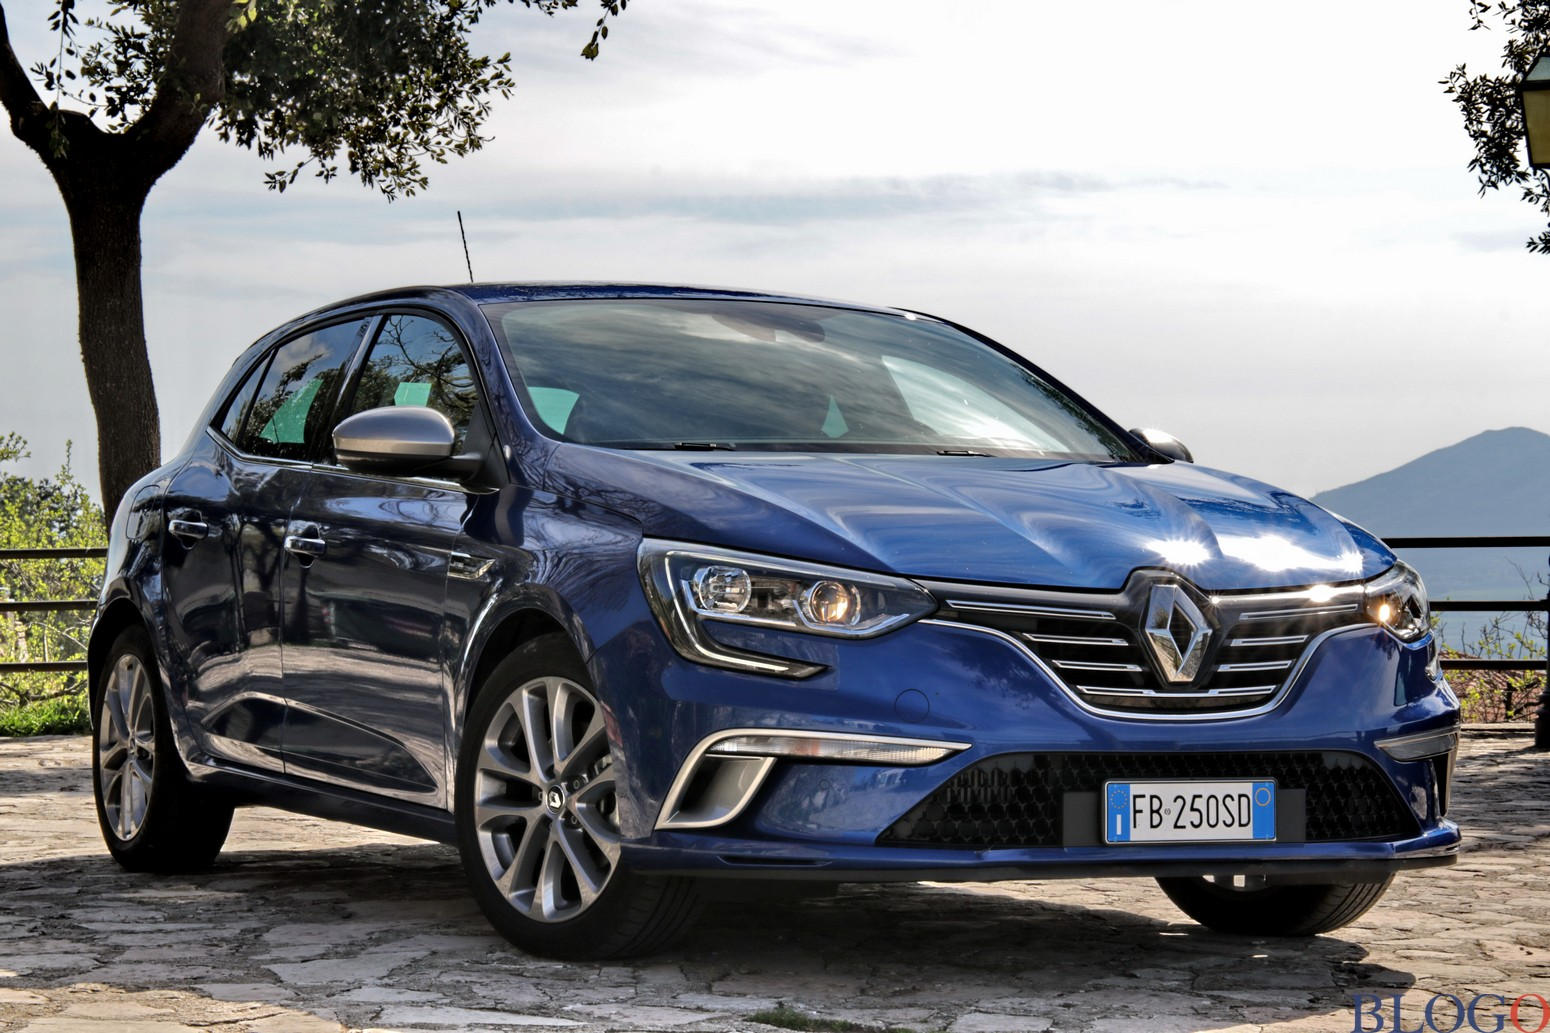 prova su strada renault megane dci 130 cv. Black Bedroom Furniture Sets. Home Design Ideas